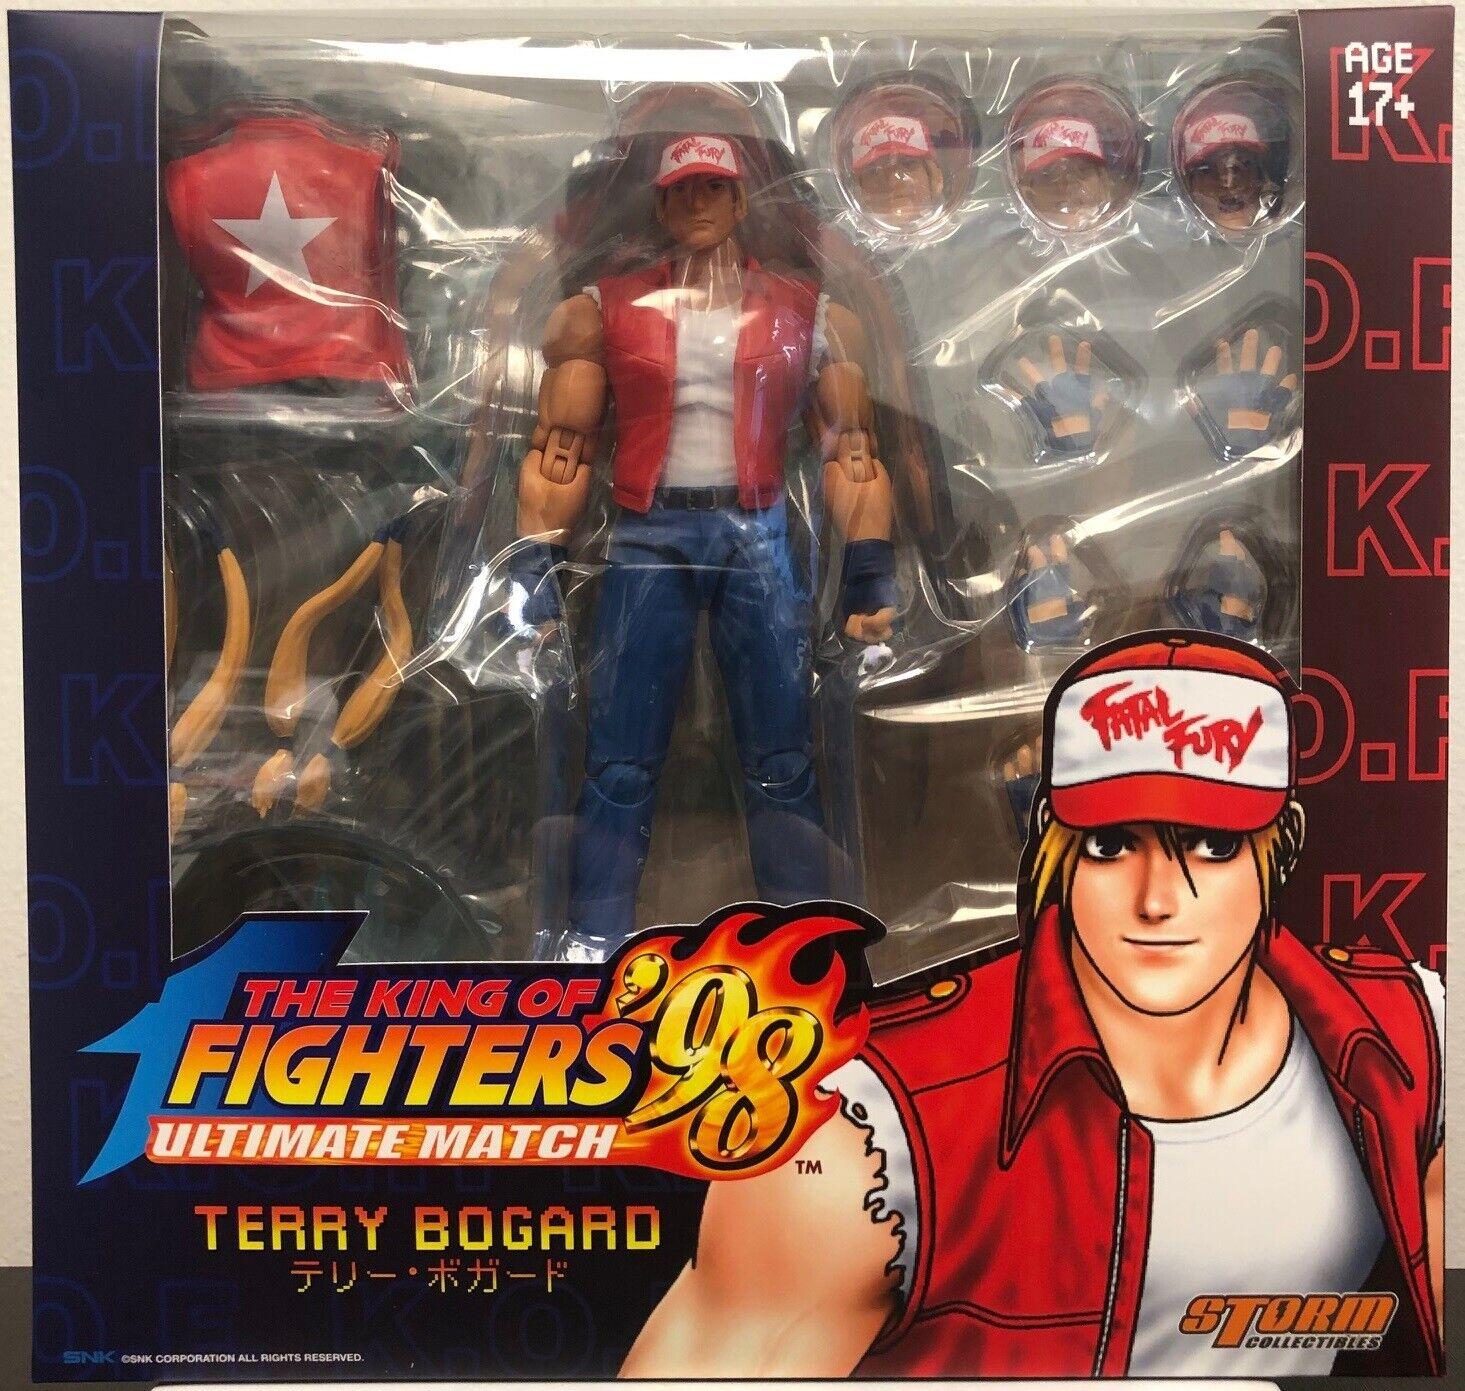 Storm Collectibles 1 12 Terry Bogard King of Fighters 98 Action Figure IN STOCK